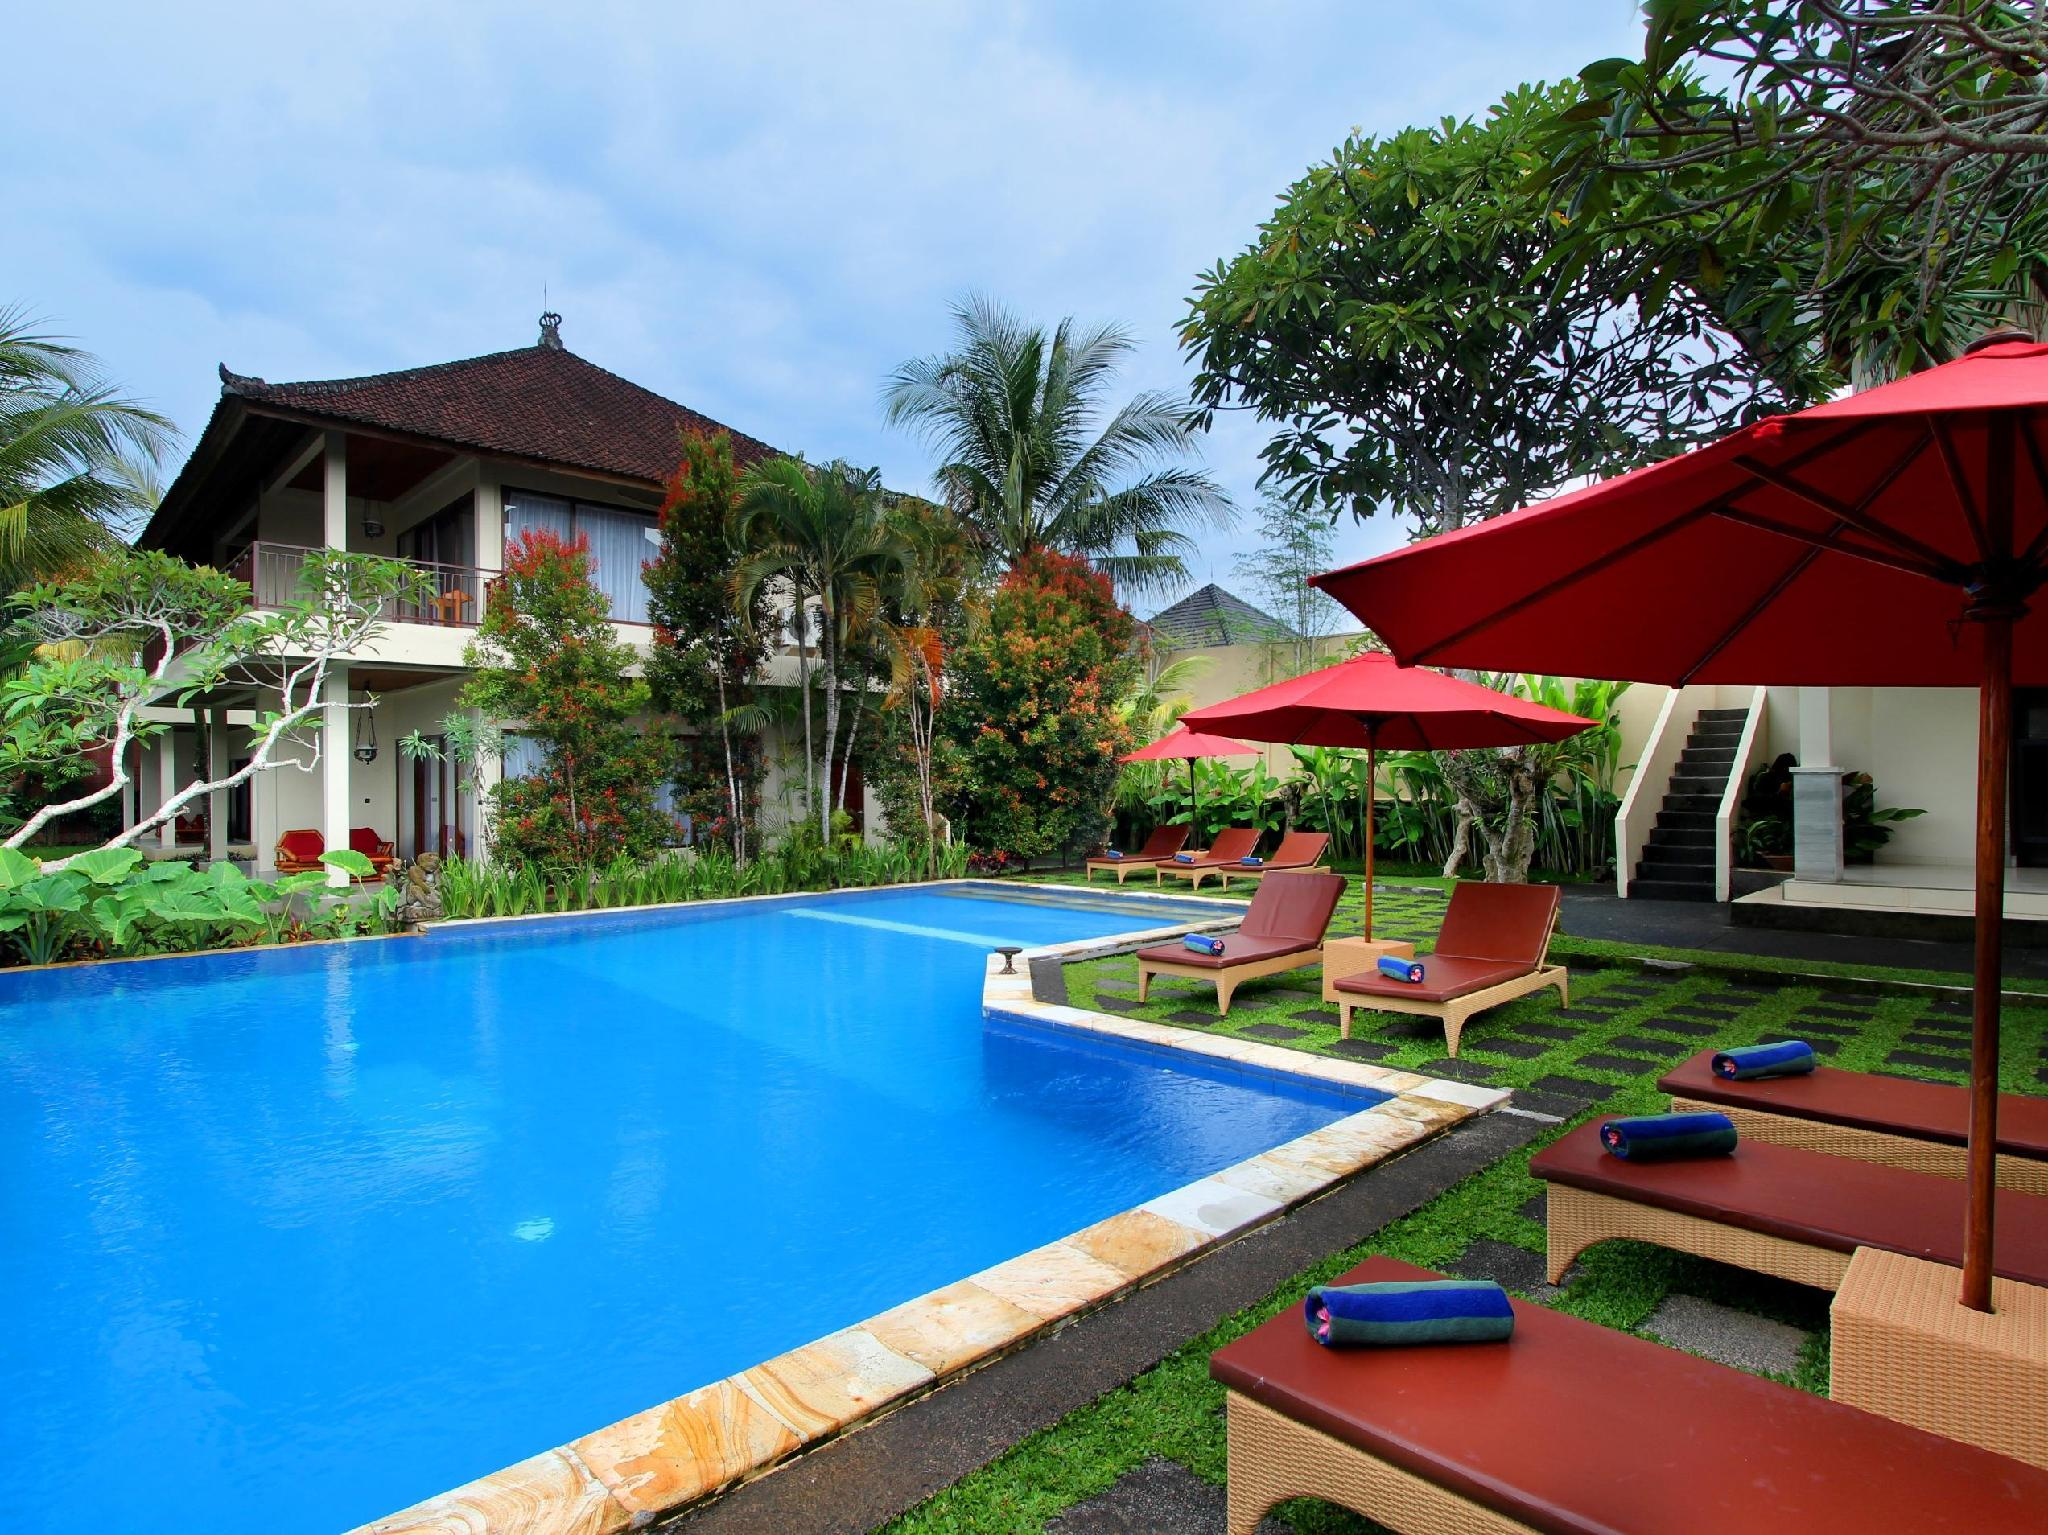 Putri ayu cottages ubud bali indonesia great for Bali indonesia hotel booking